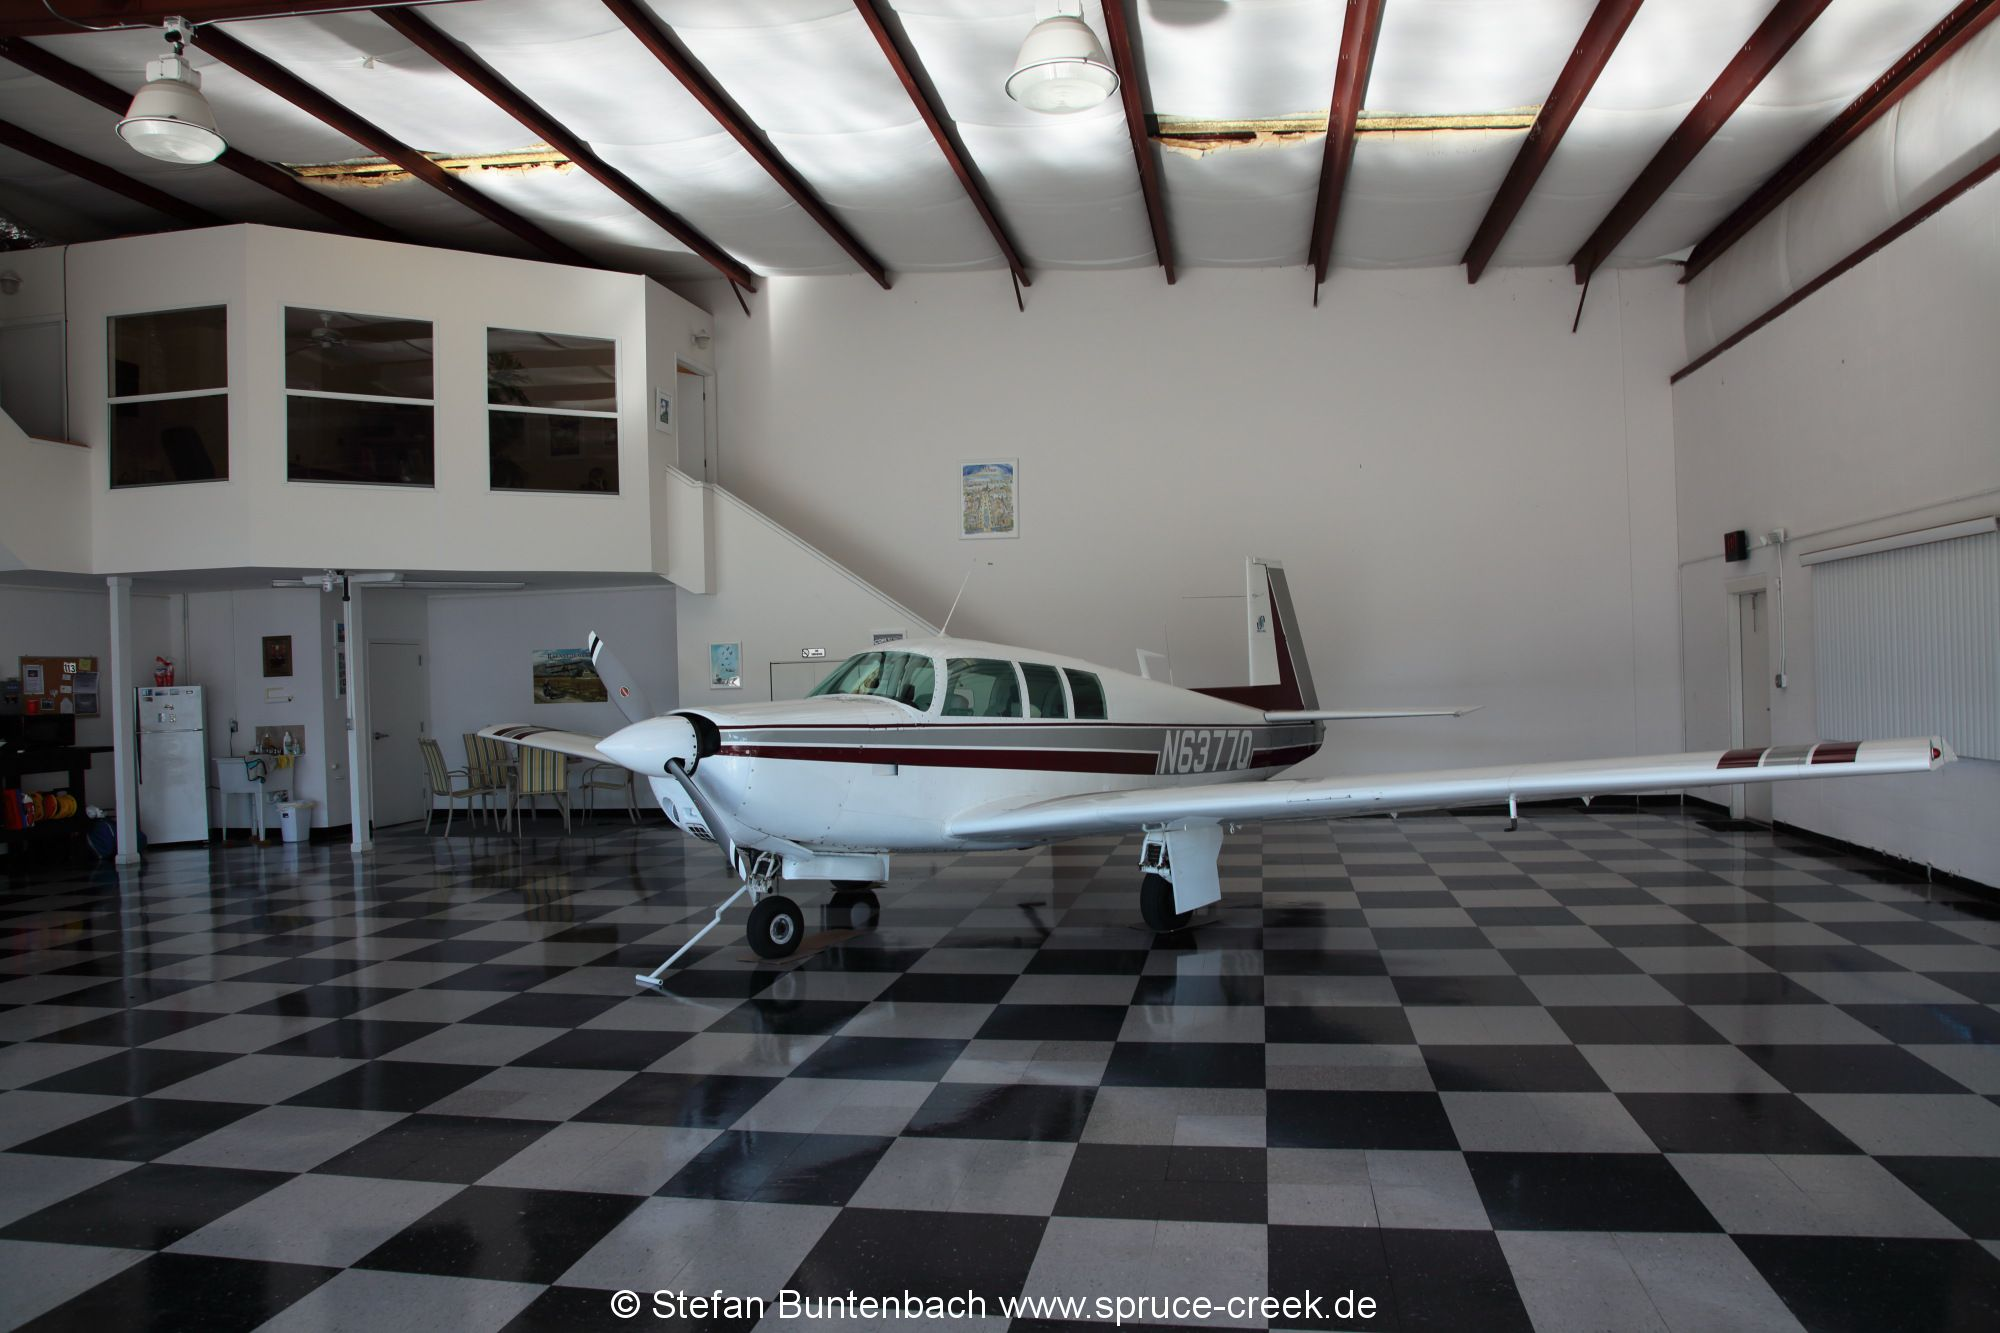 Mooney M20 F, N6377Q, resting in a very nice hangar in the Spruce Creek Fly in Community near Daytona Beach in Florida. --- Mooney M20F IMG_1541